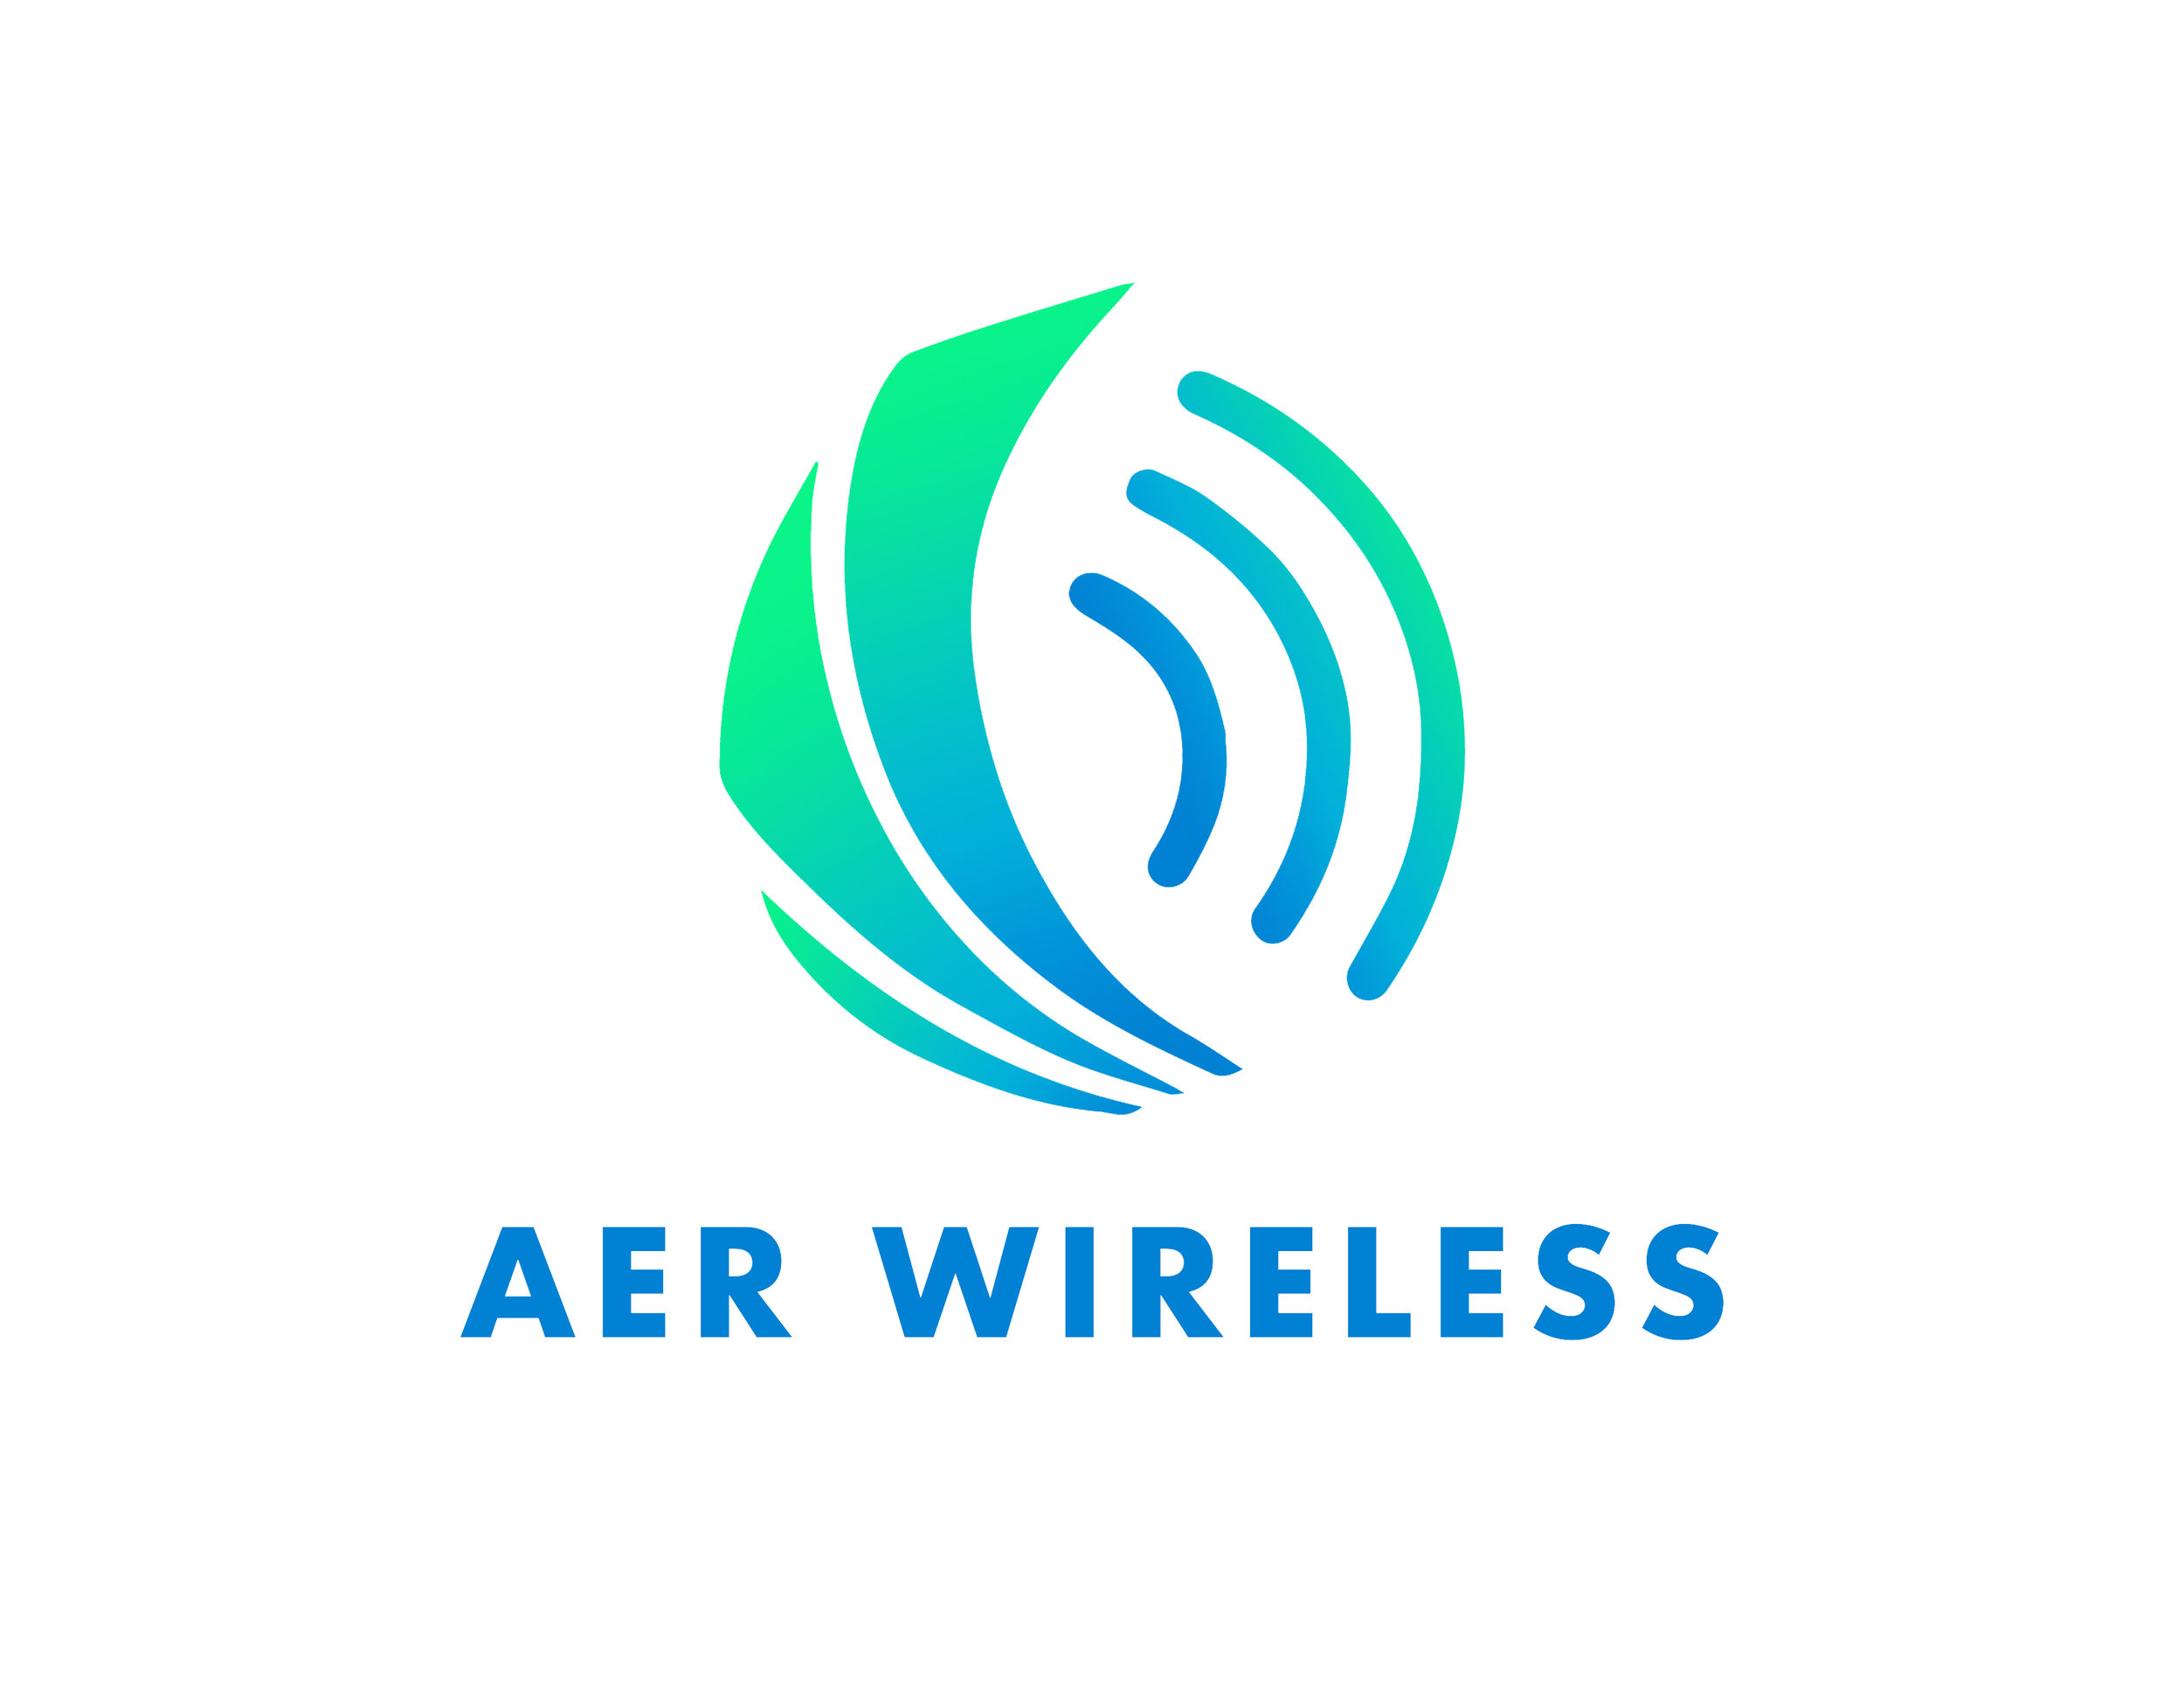 logowireless.jpg